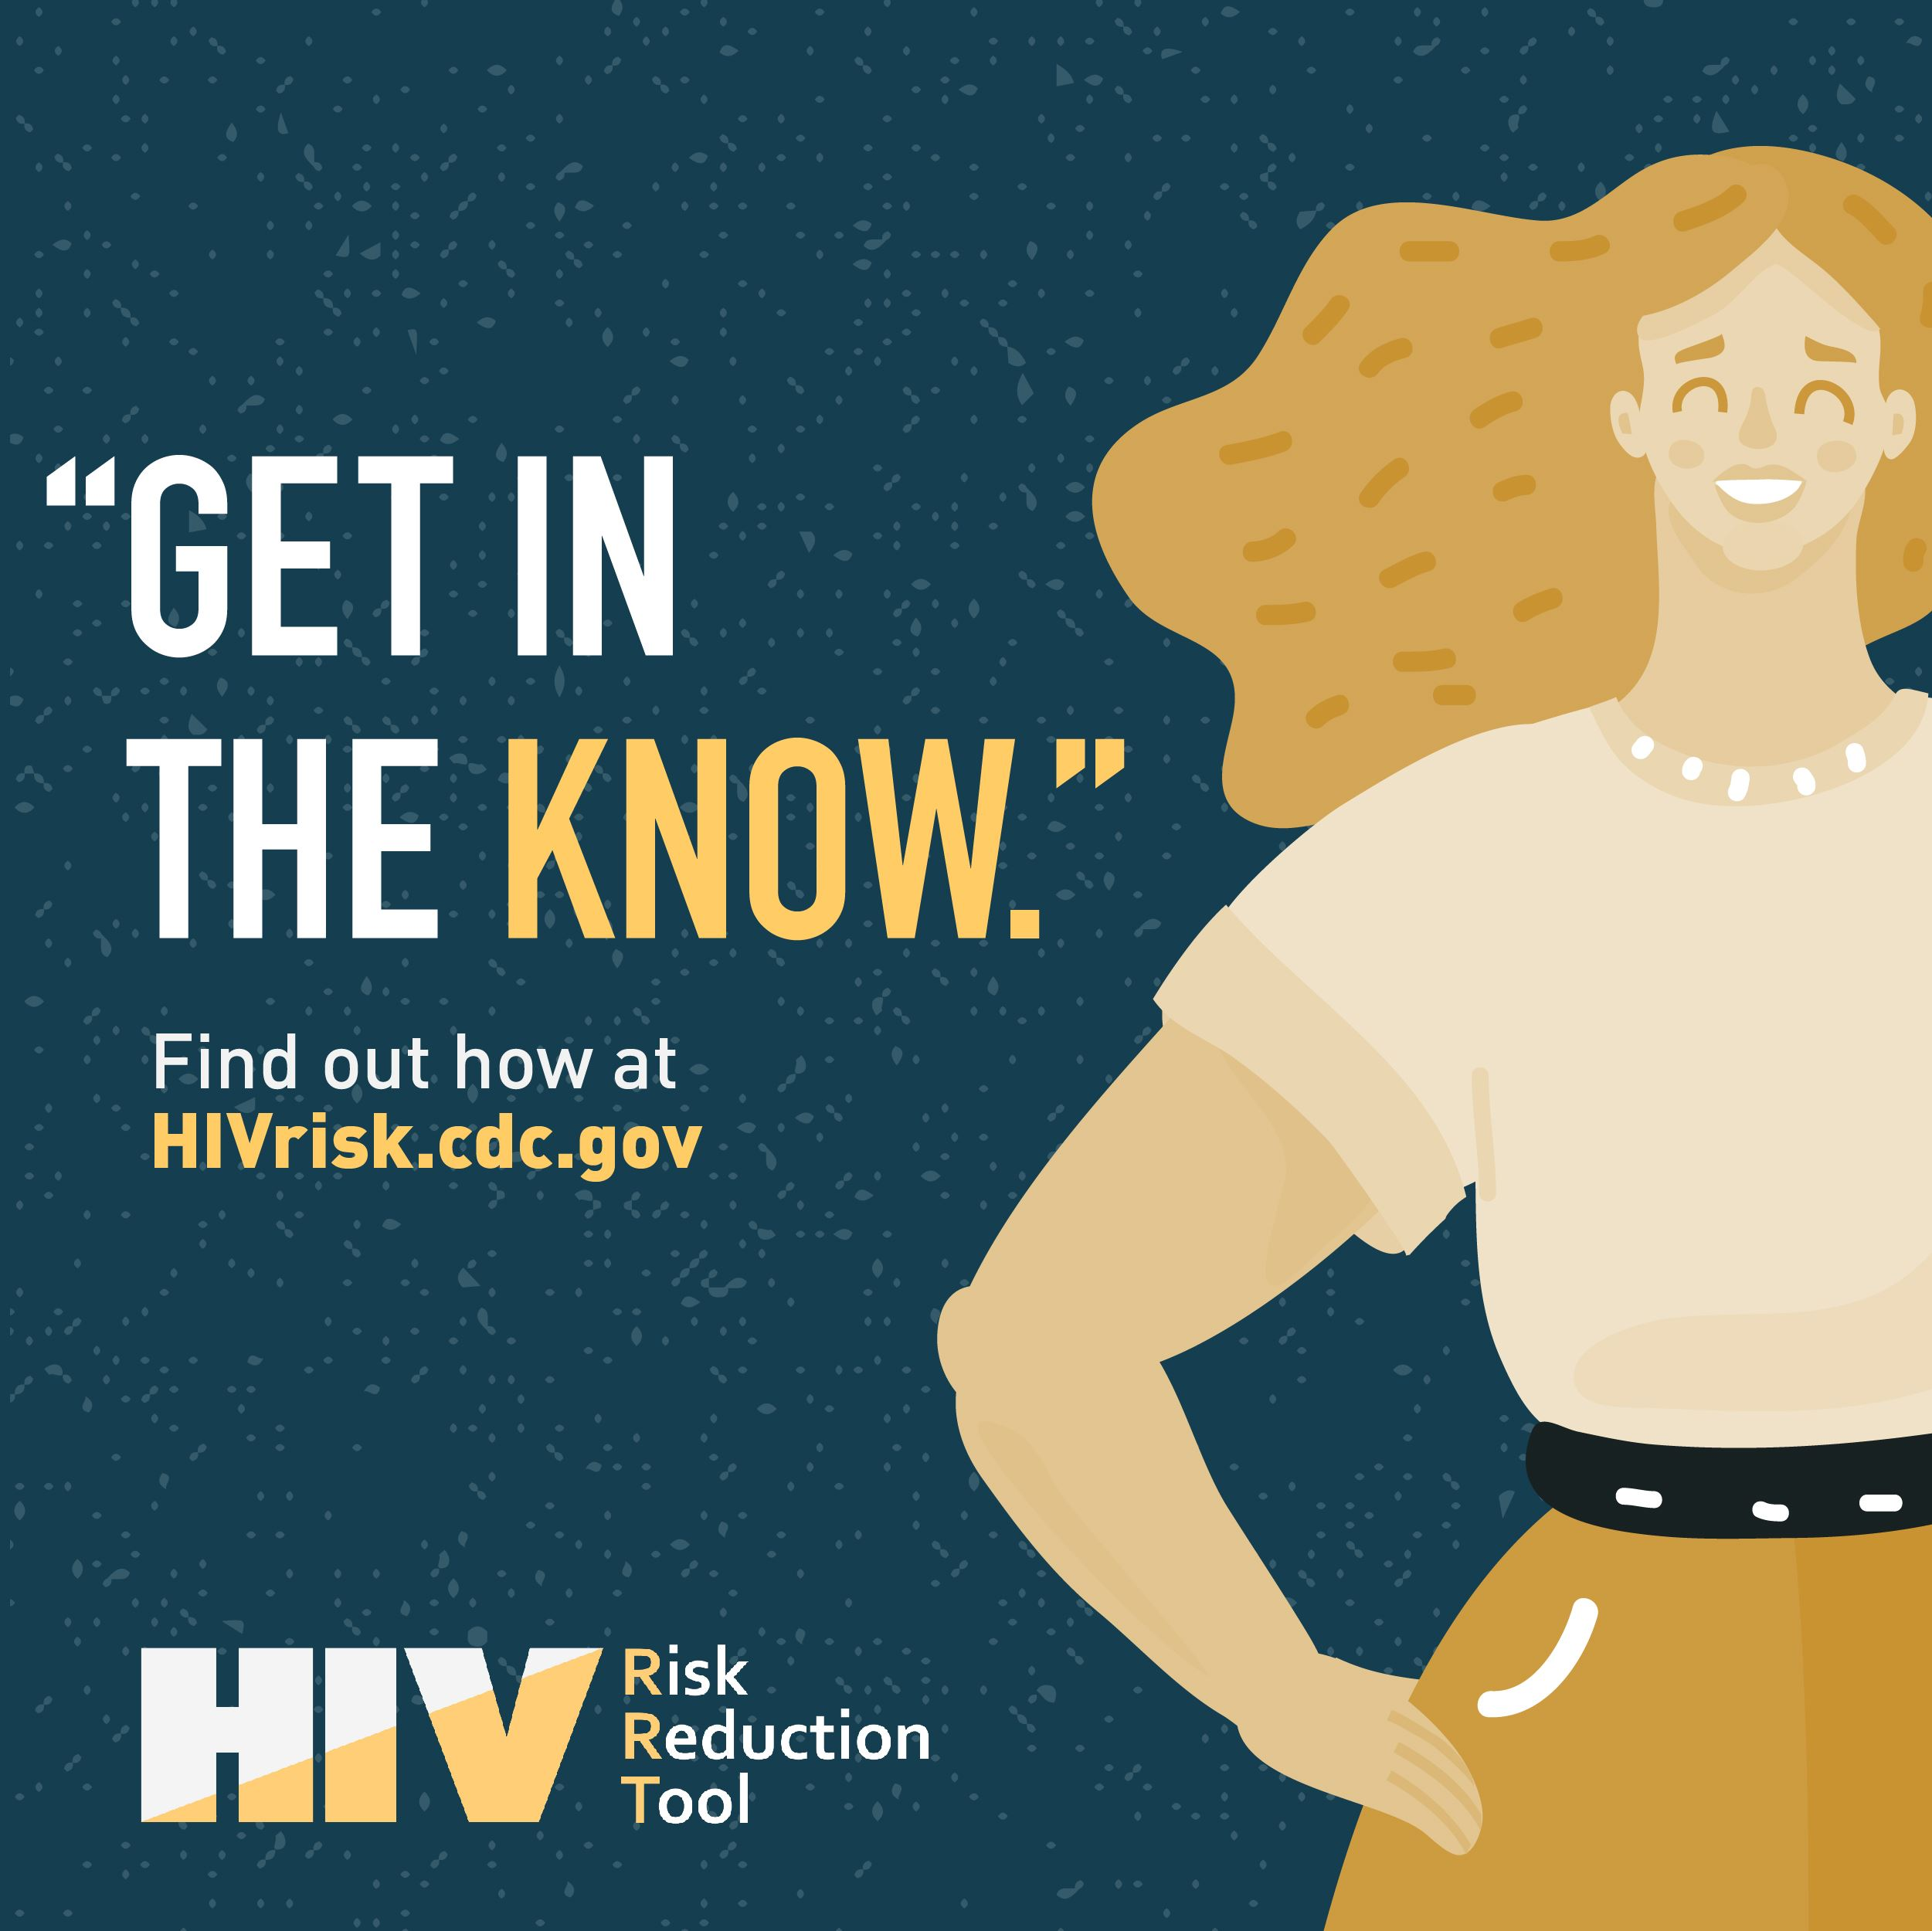 CDC HIV Get in the Know